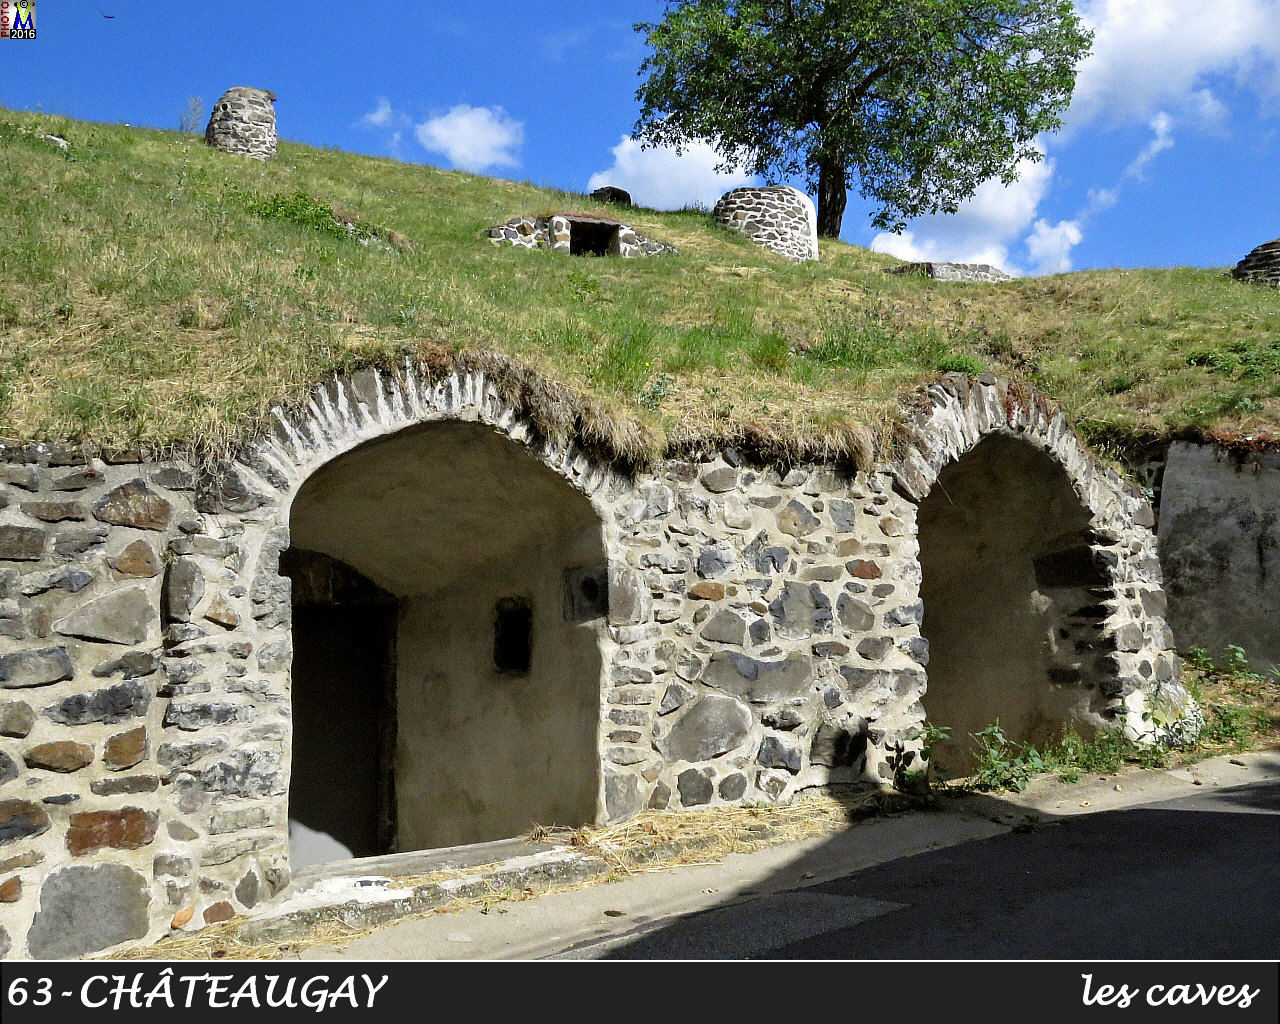 63CHATEAUGAY_caves_108.jpg